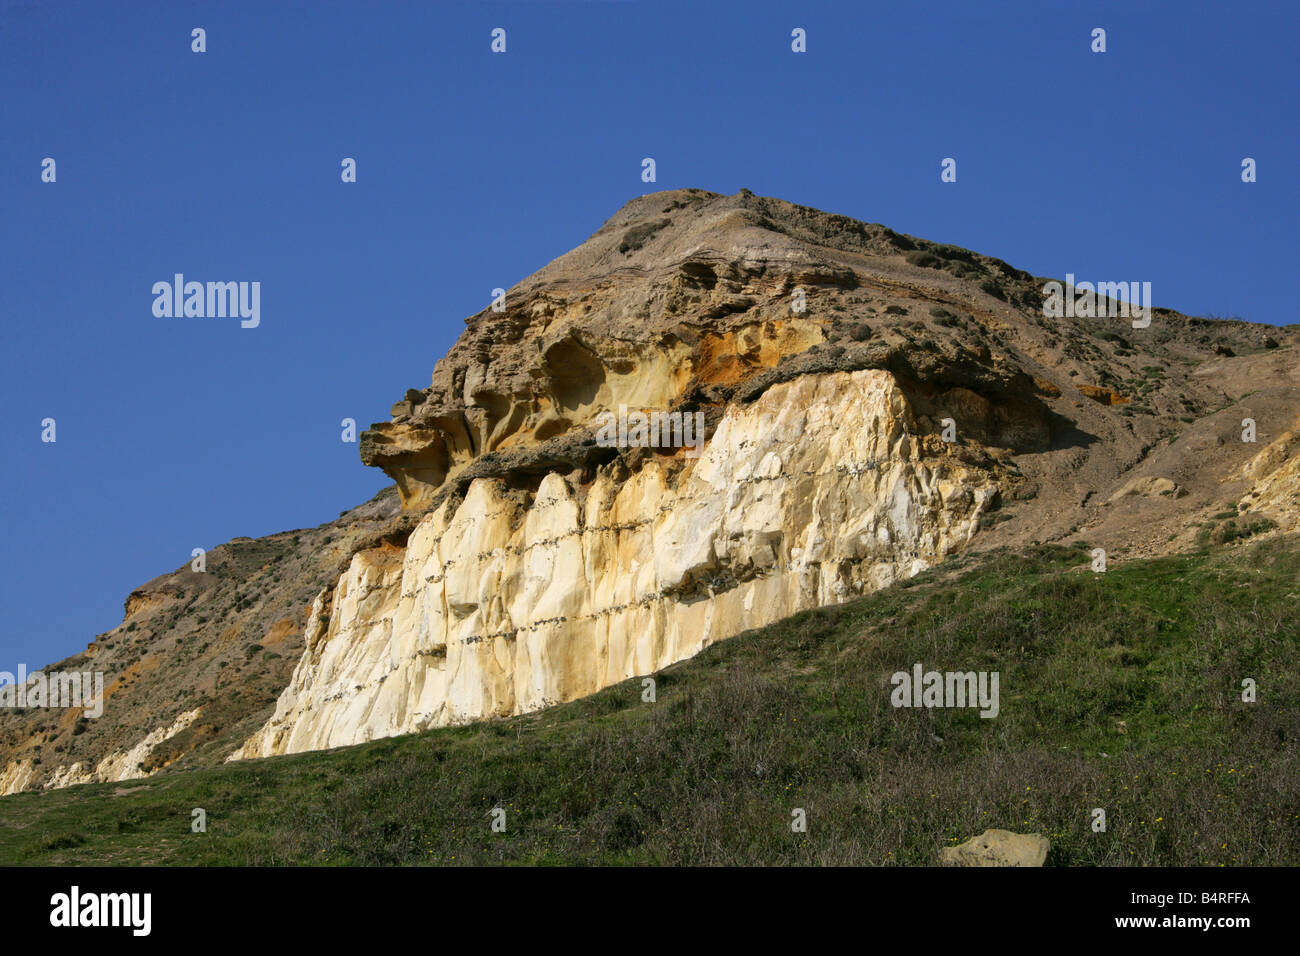 Geological Site of Interest, Castle Hill Nature Reserve, Newhaven, East Sussex, UK - Stock Image